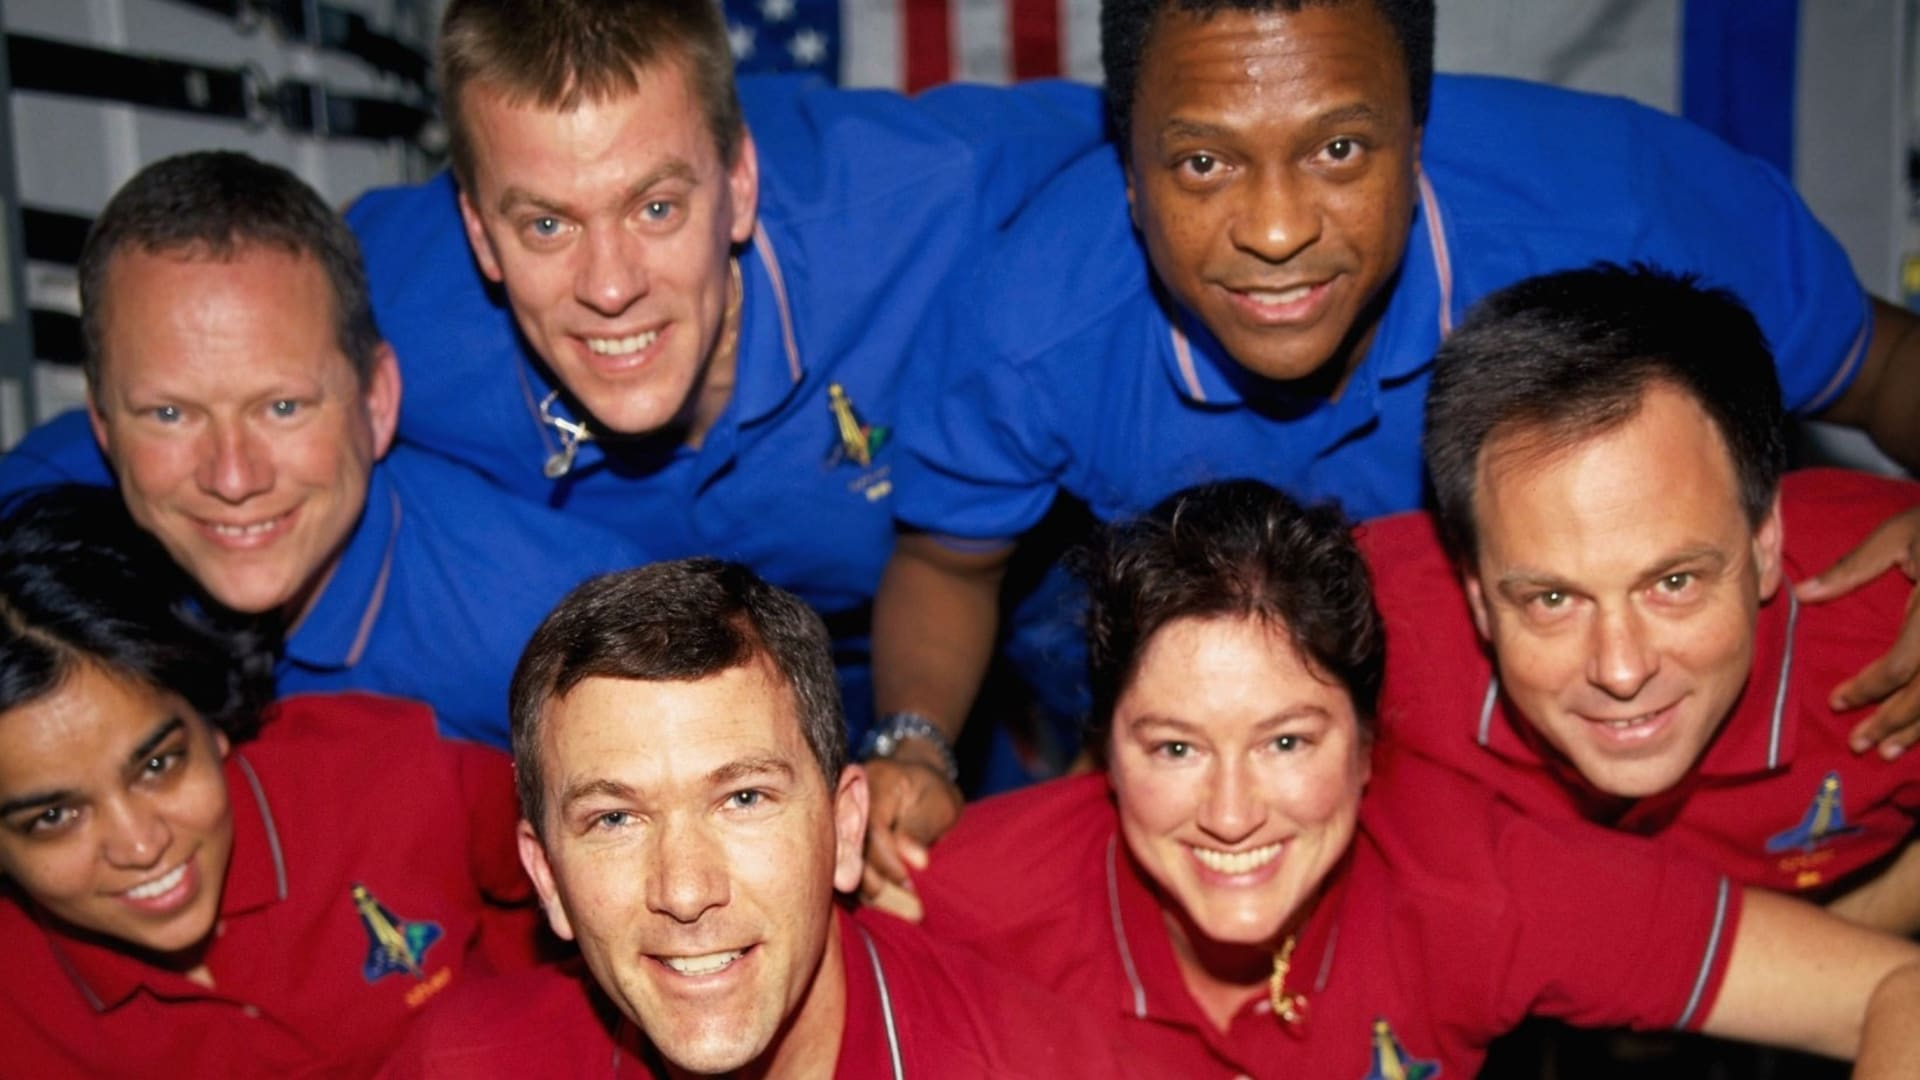 From left, top row: David Brown, mission specialist; William McCool, pilot; and Michael Anderson, payload commander. Bottom row: Kalpana Chawla, mission specialist; Rick Husband, commander; Laurel Clark, mission specialist; and Ilan Ramon, payload specialist.